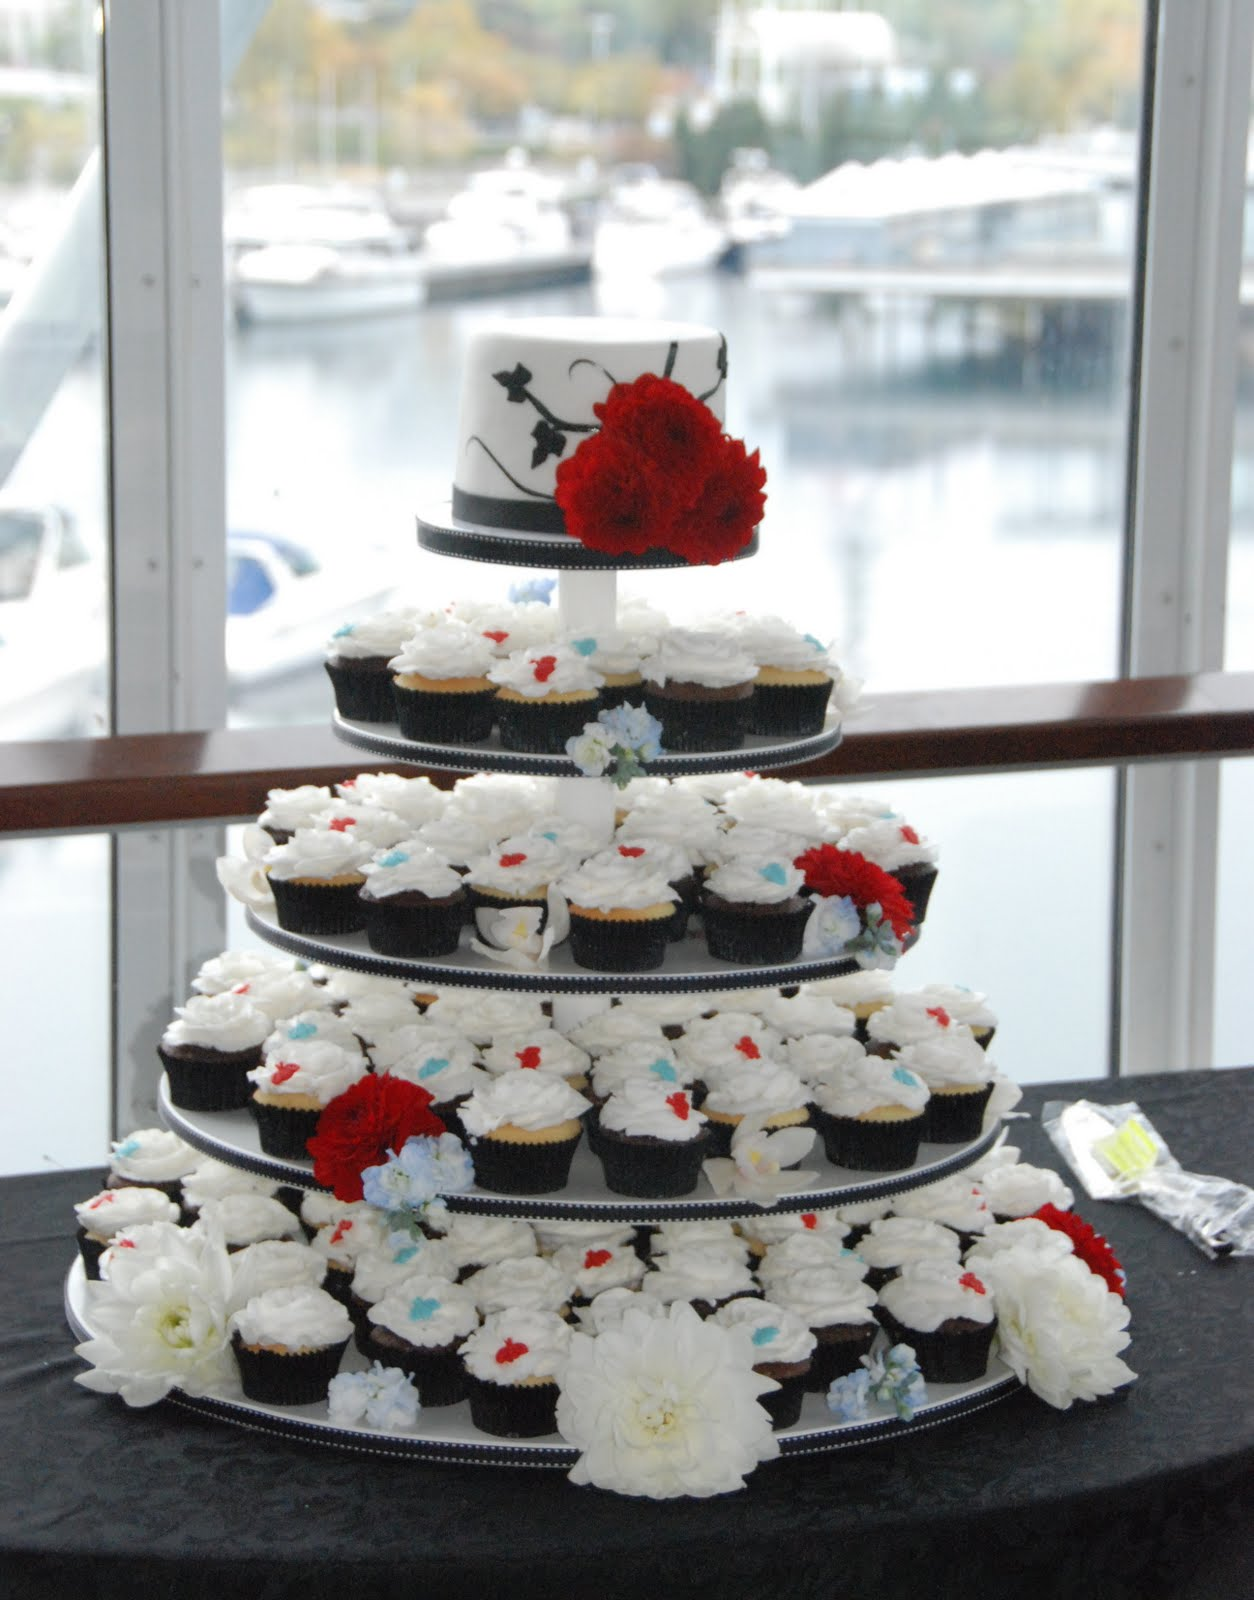 Black White Wedding Cupcakes With Red Blue Bee Accents To Match Invitations Chocolate Vanilla Bean Icing In Shape Of A Rose